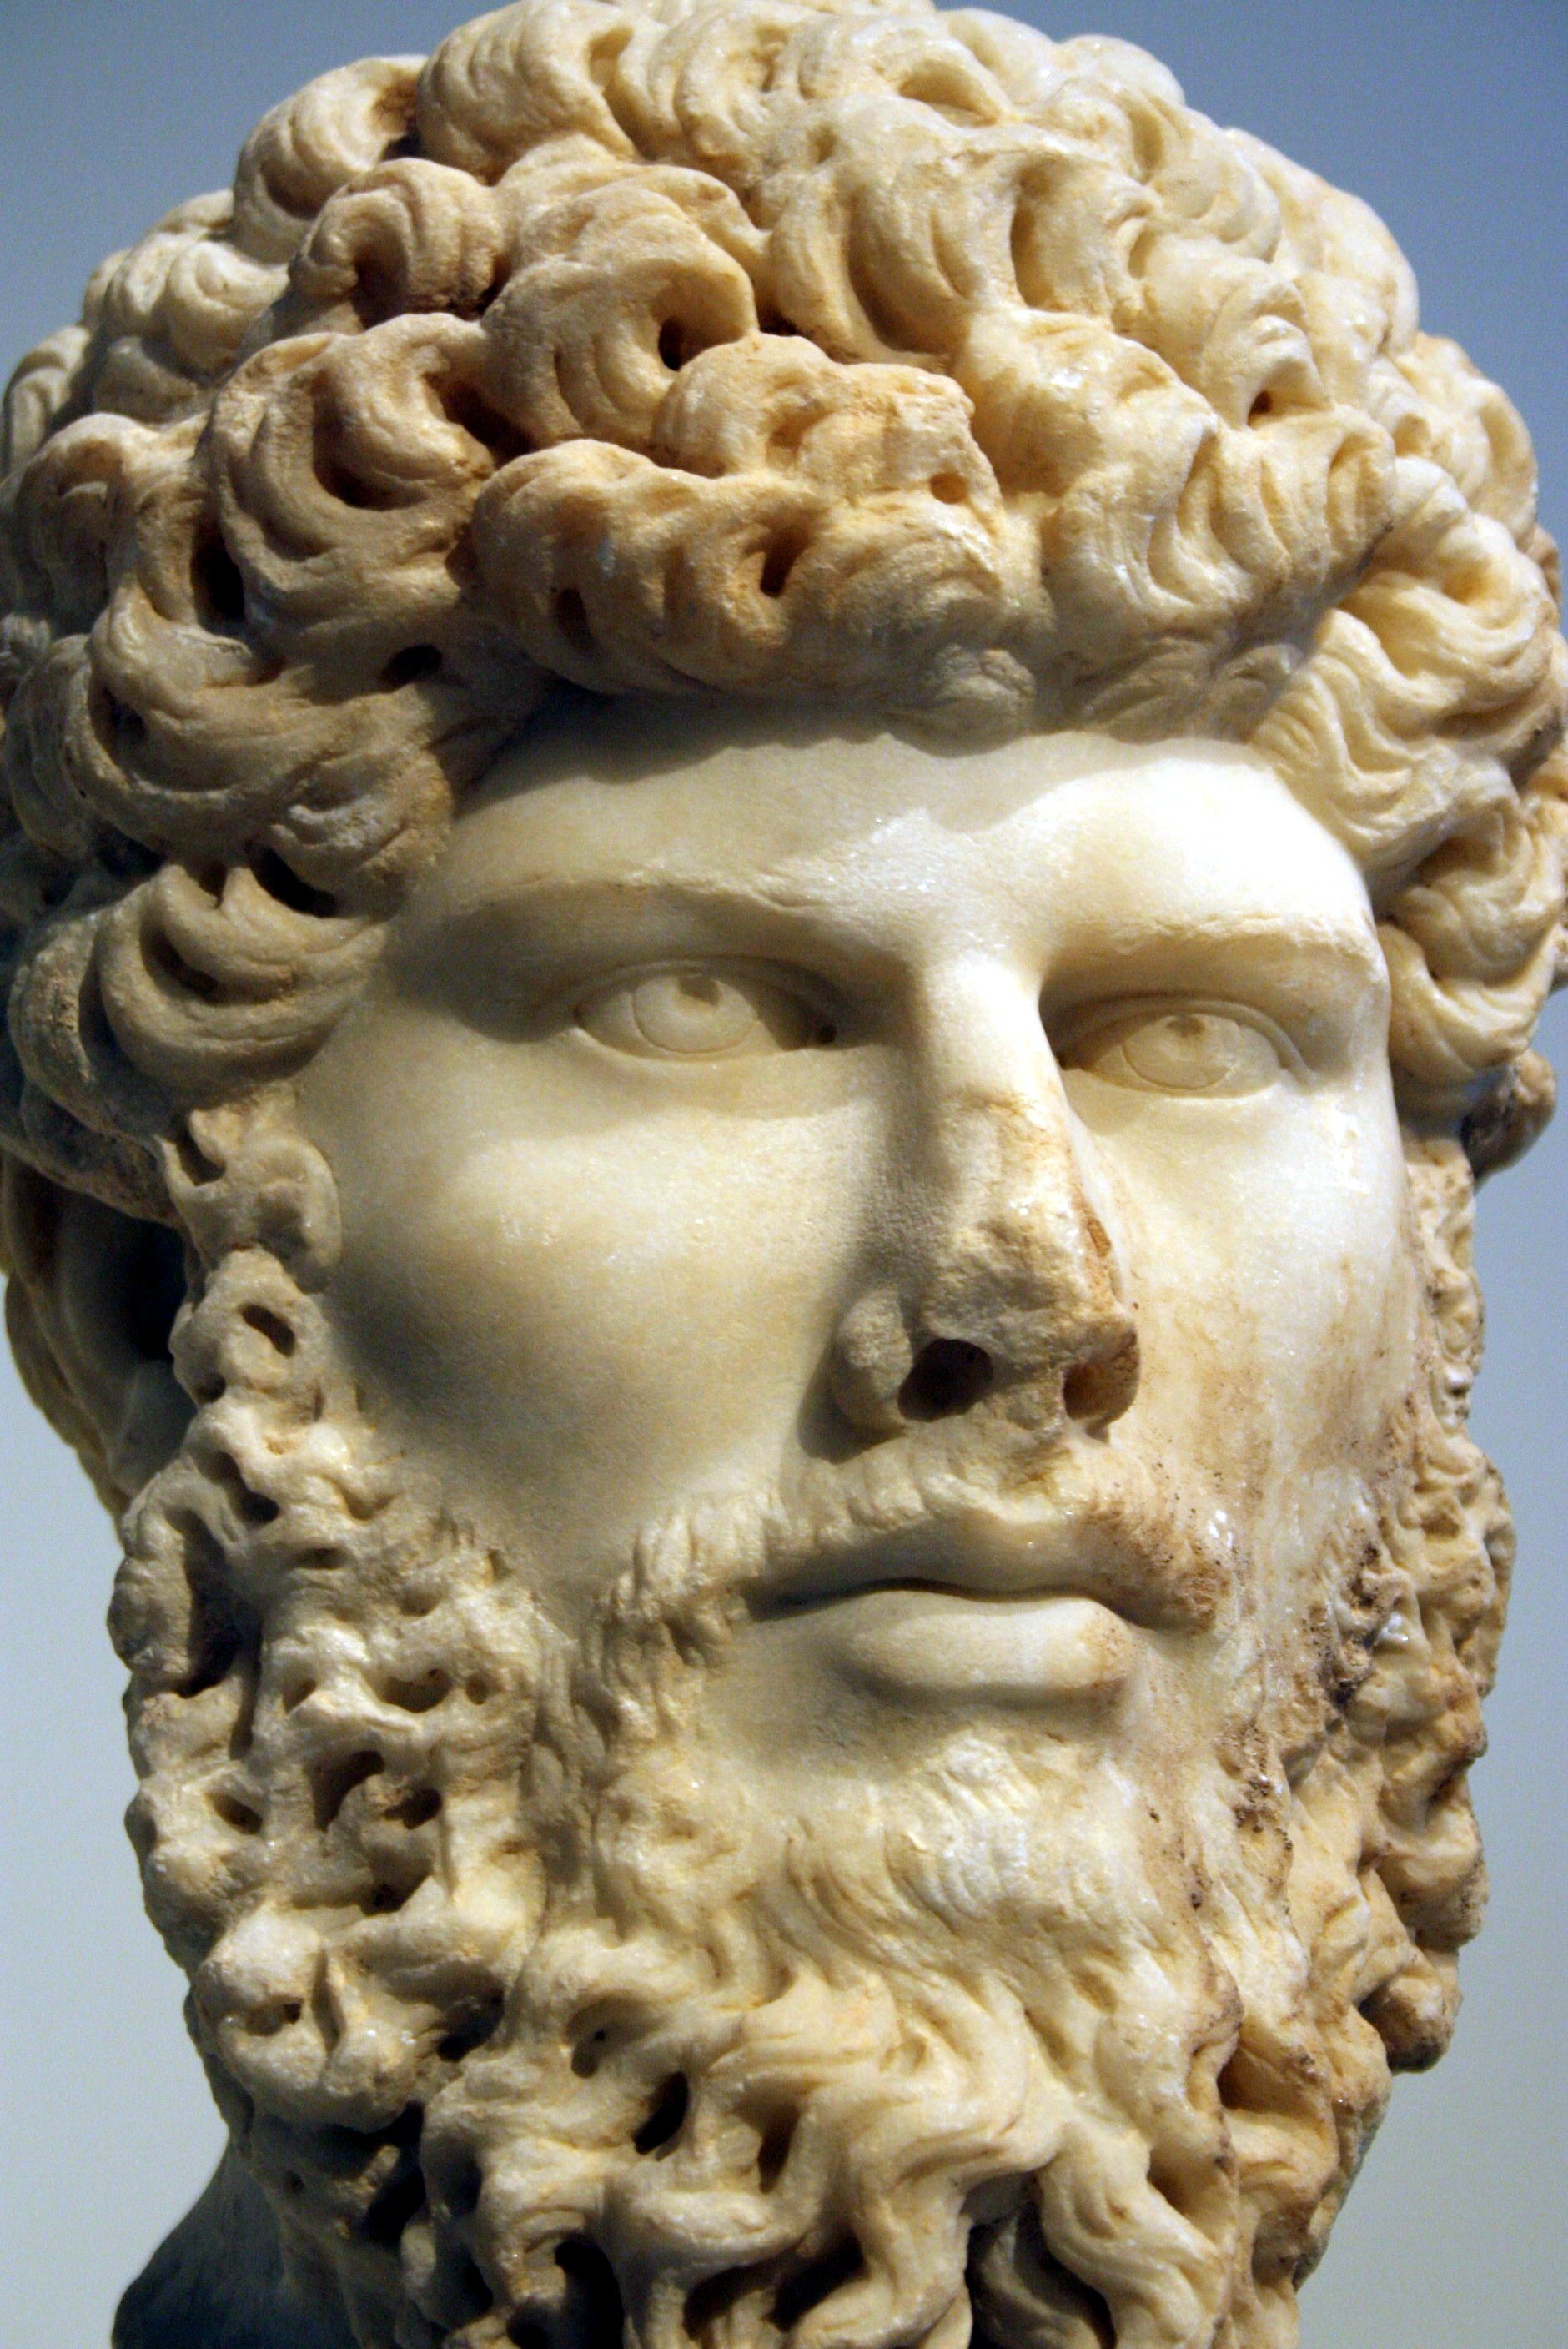 a essay of greek hero hercules Cretan bull introduction heracles, or sometimes referred to by romans as hercules, was an ancient greek hero heracles was the twin brother of iphicles heracles was the son of zeus, a god, and alcmene, a greek mortal woman.